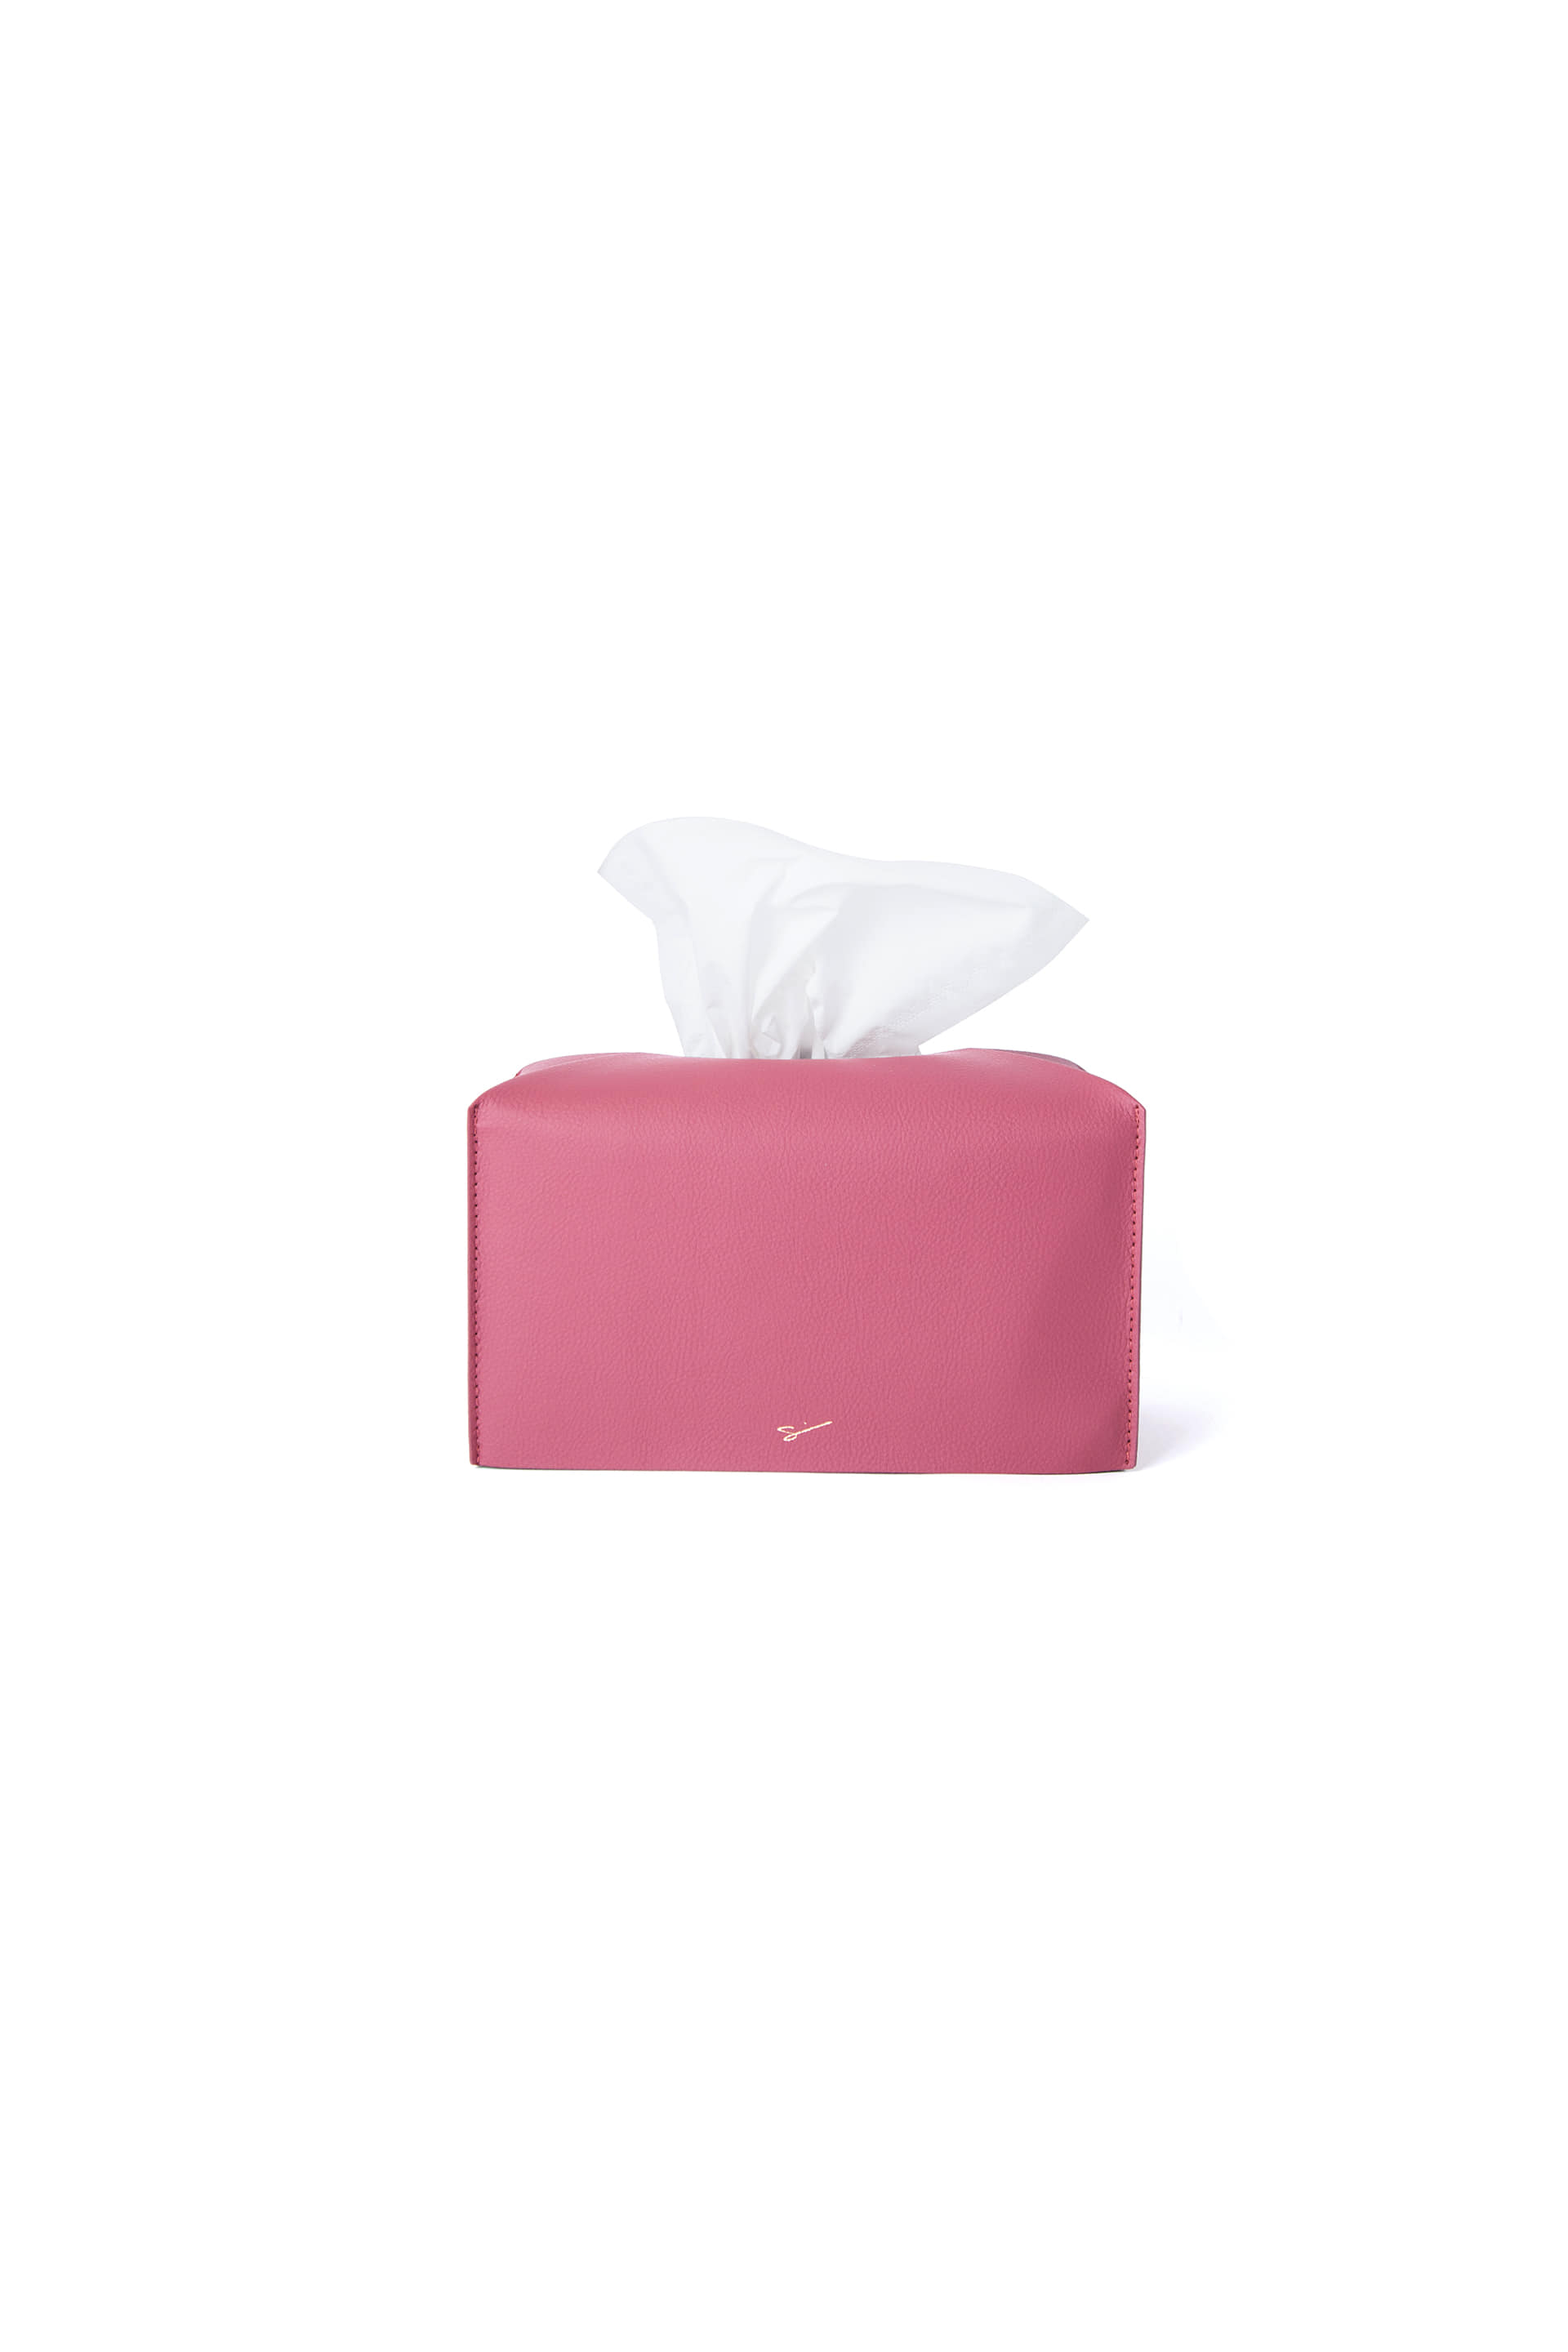 TISSUE CASE L 05 Cherry Pink